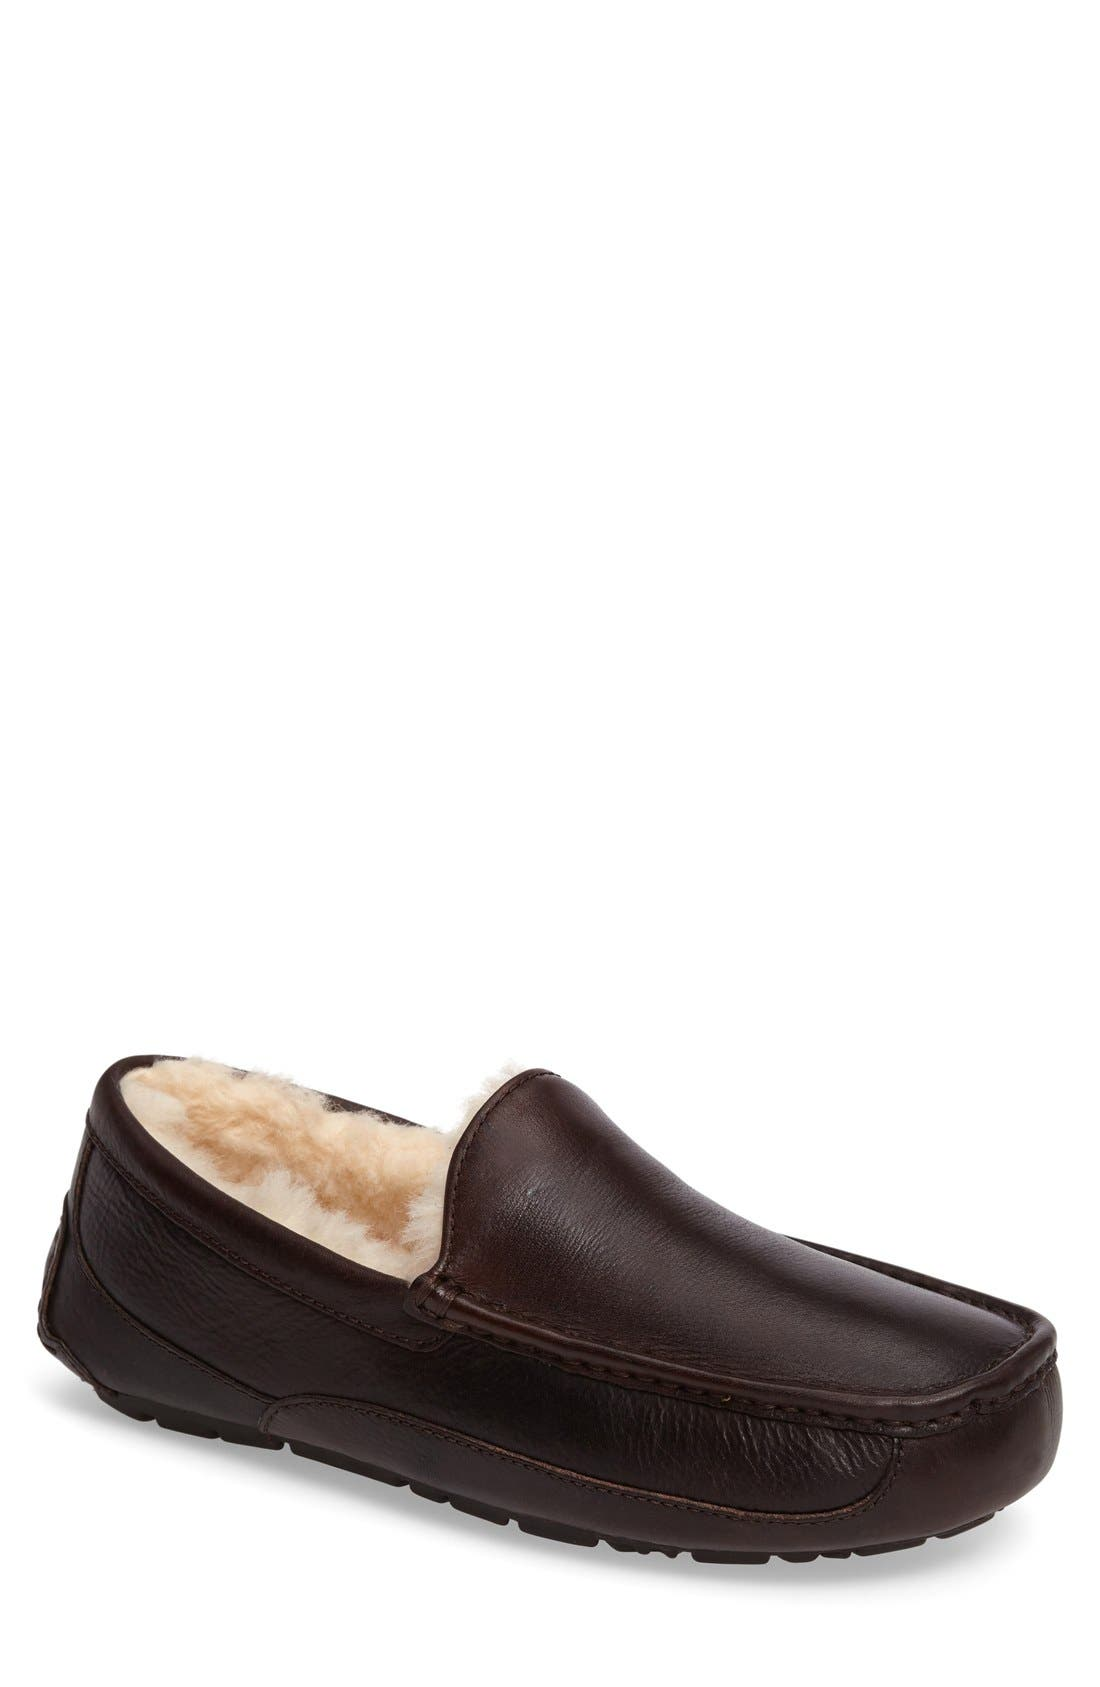 Main Image - UGG® Ascot Leather Slipper (Men)